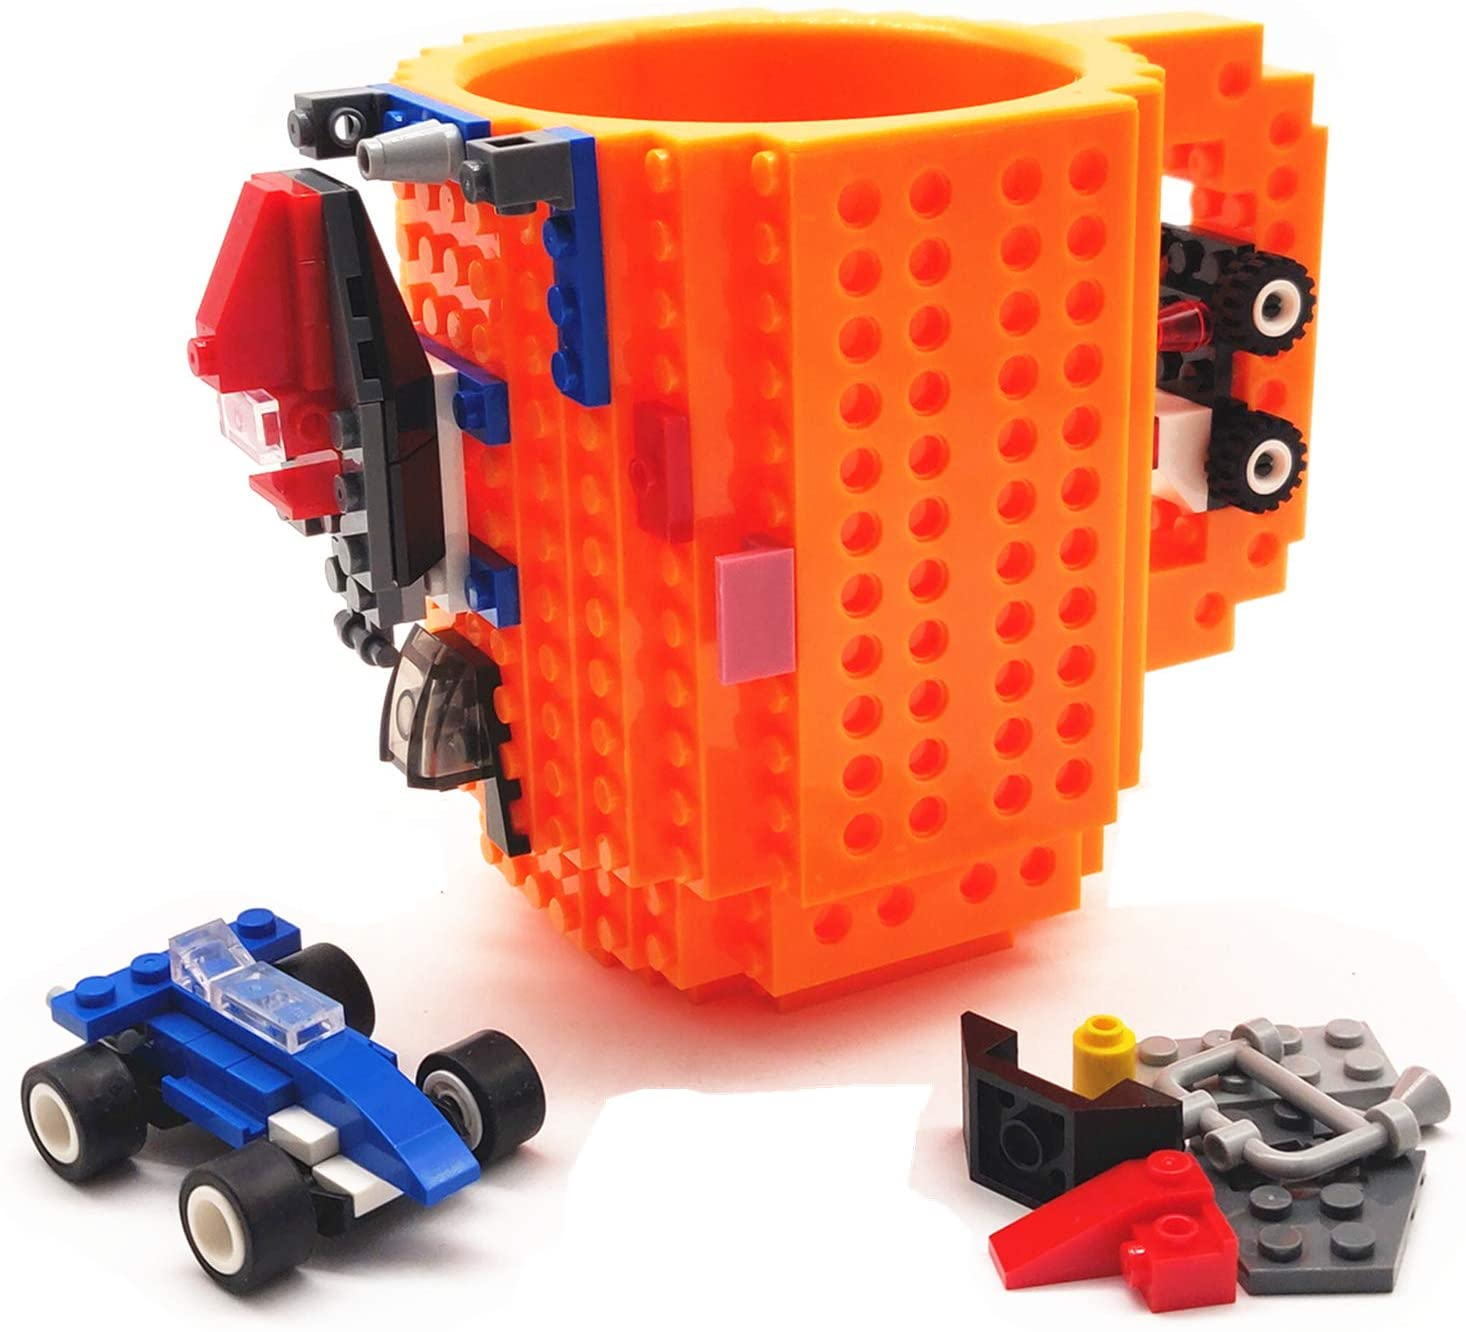 BUTLING Build-On Brick Mug, Creative DIY Building Blocks Coffee Cup, Water Bottle Puzzle Toy Mug, Desk Ornament, Unique Christmas Gift Idea, Compatible with Lego (Orange)